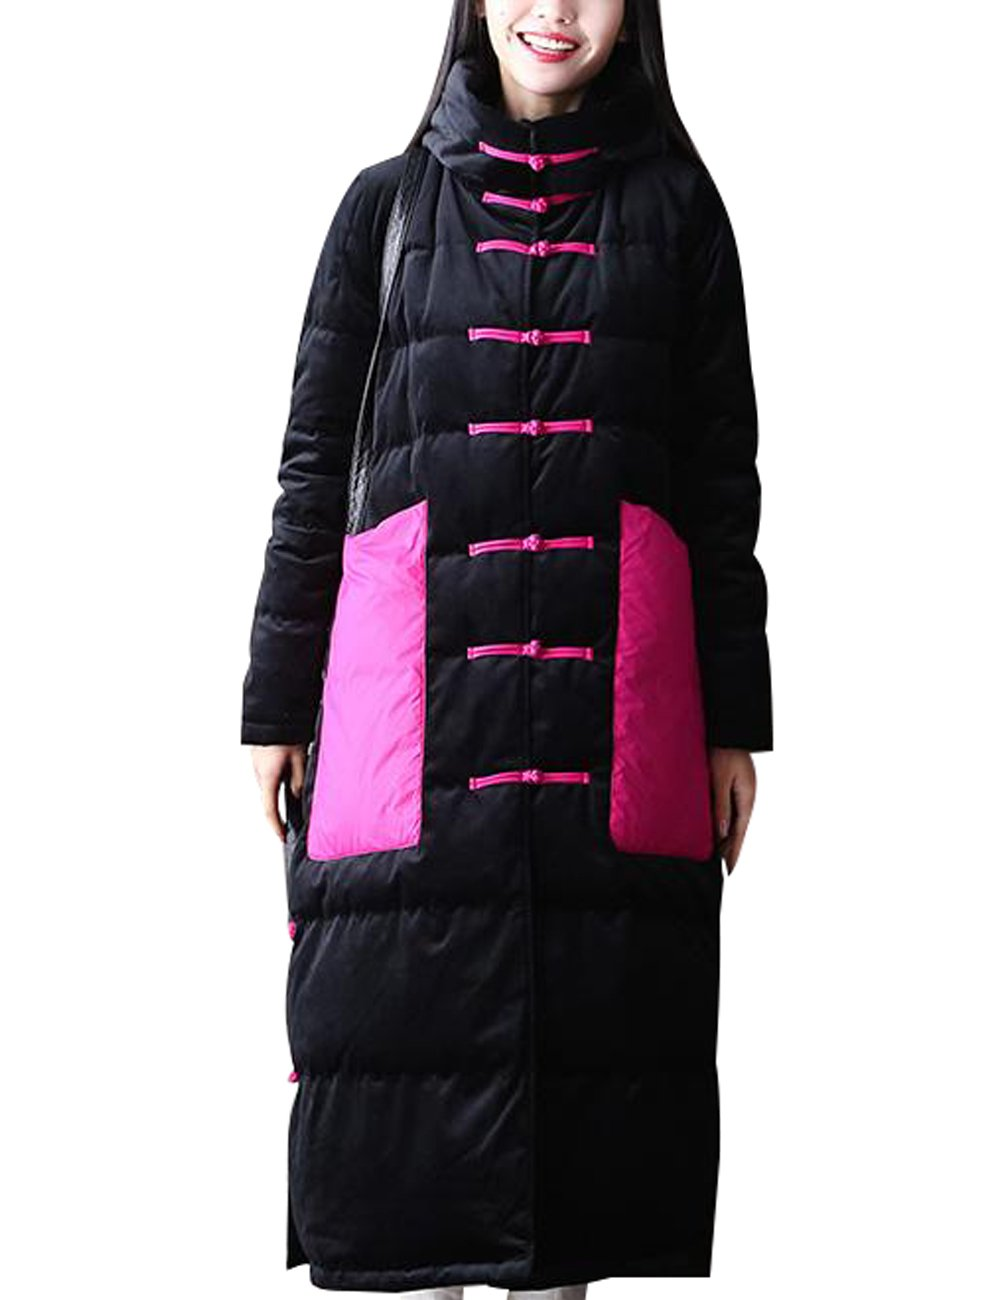 Zoulee Women's Long Maxi Chinese Frog Down Coat with Hood Front Two Pockets Style 2 Size L